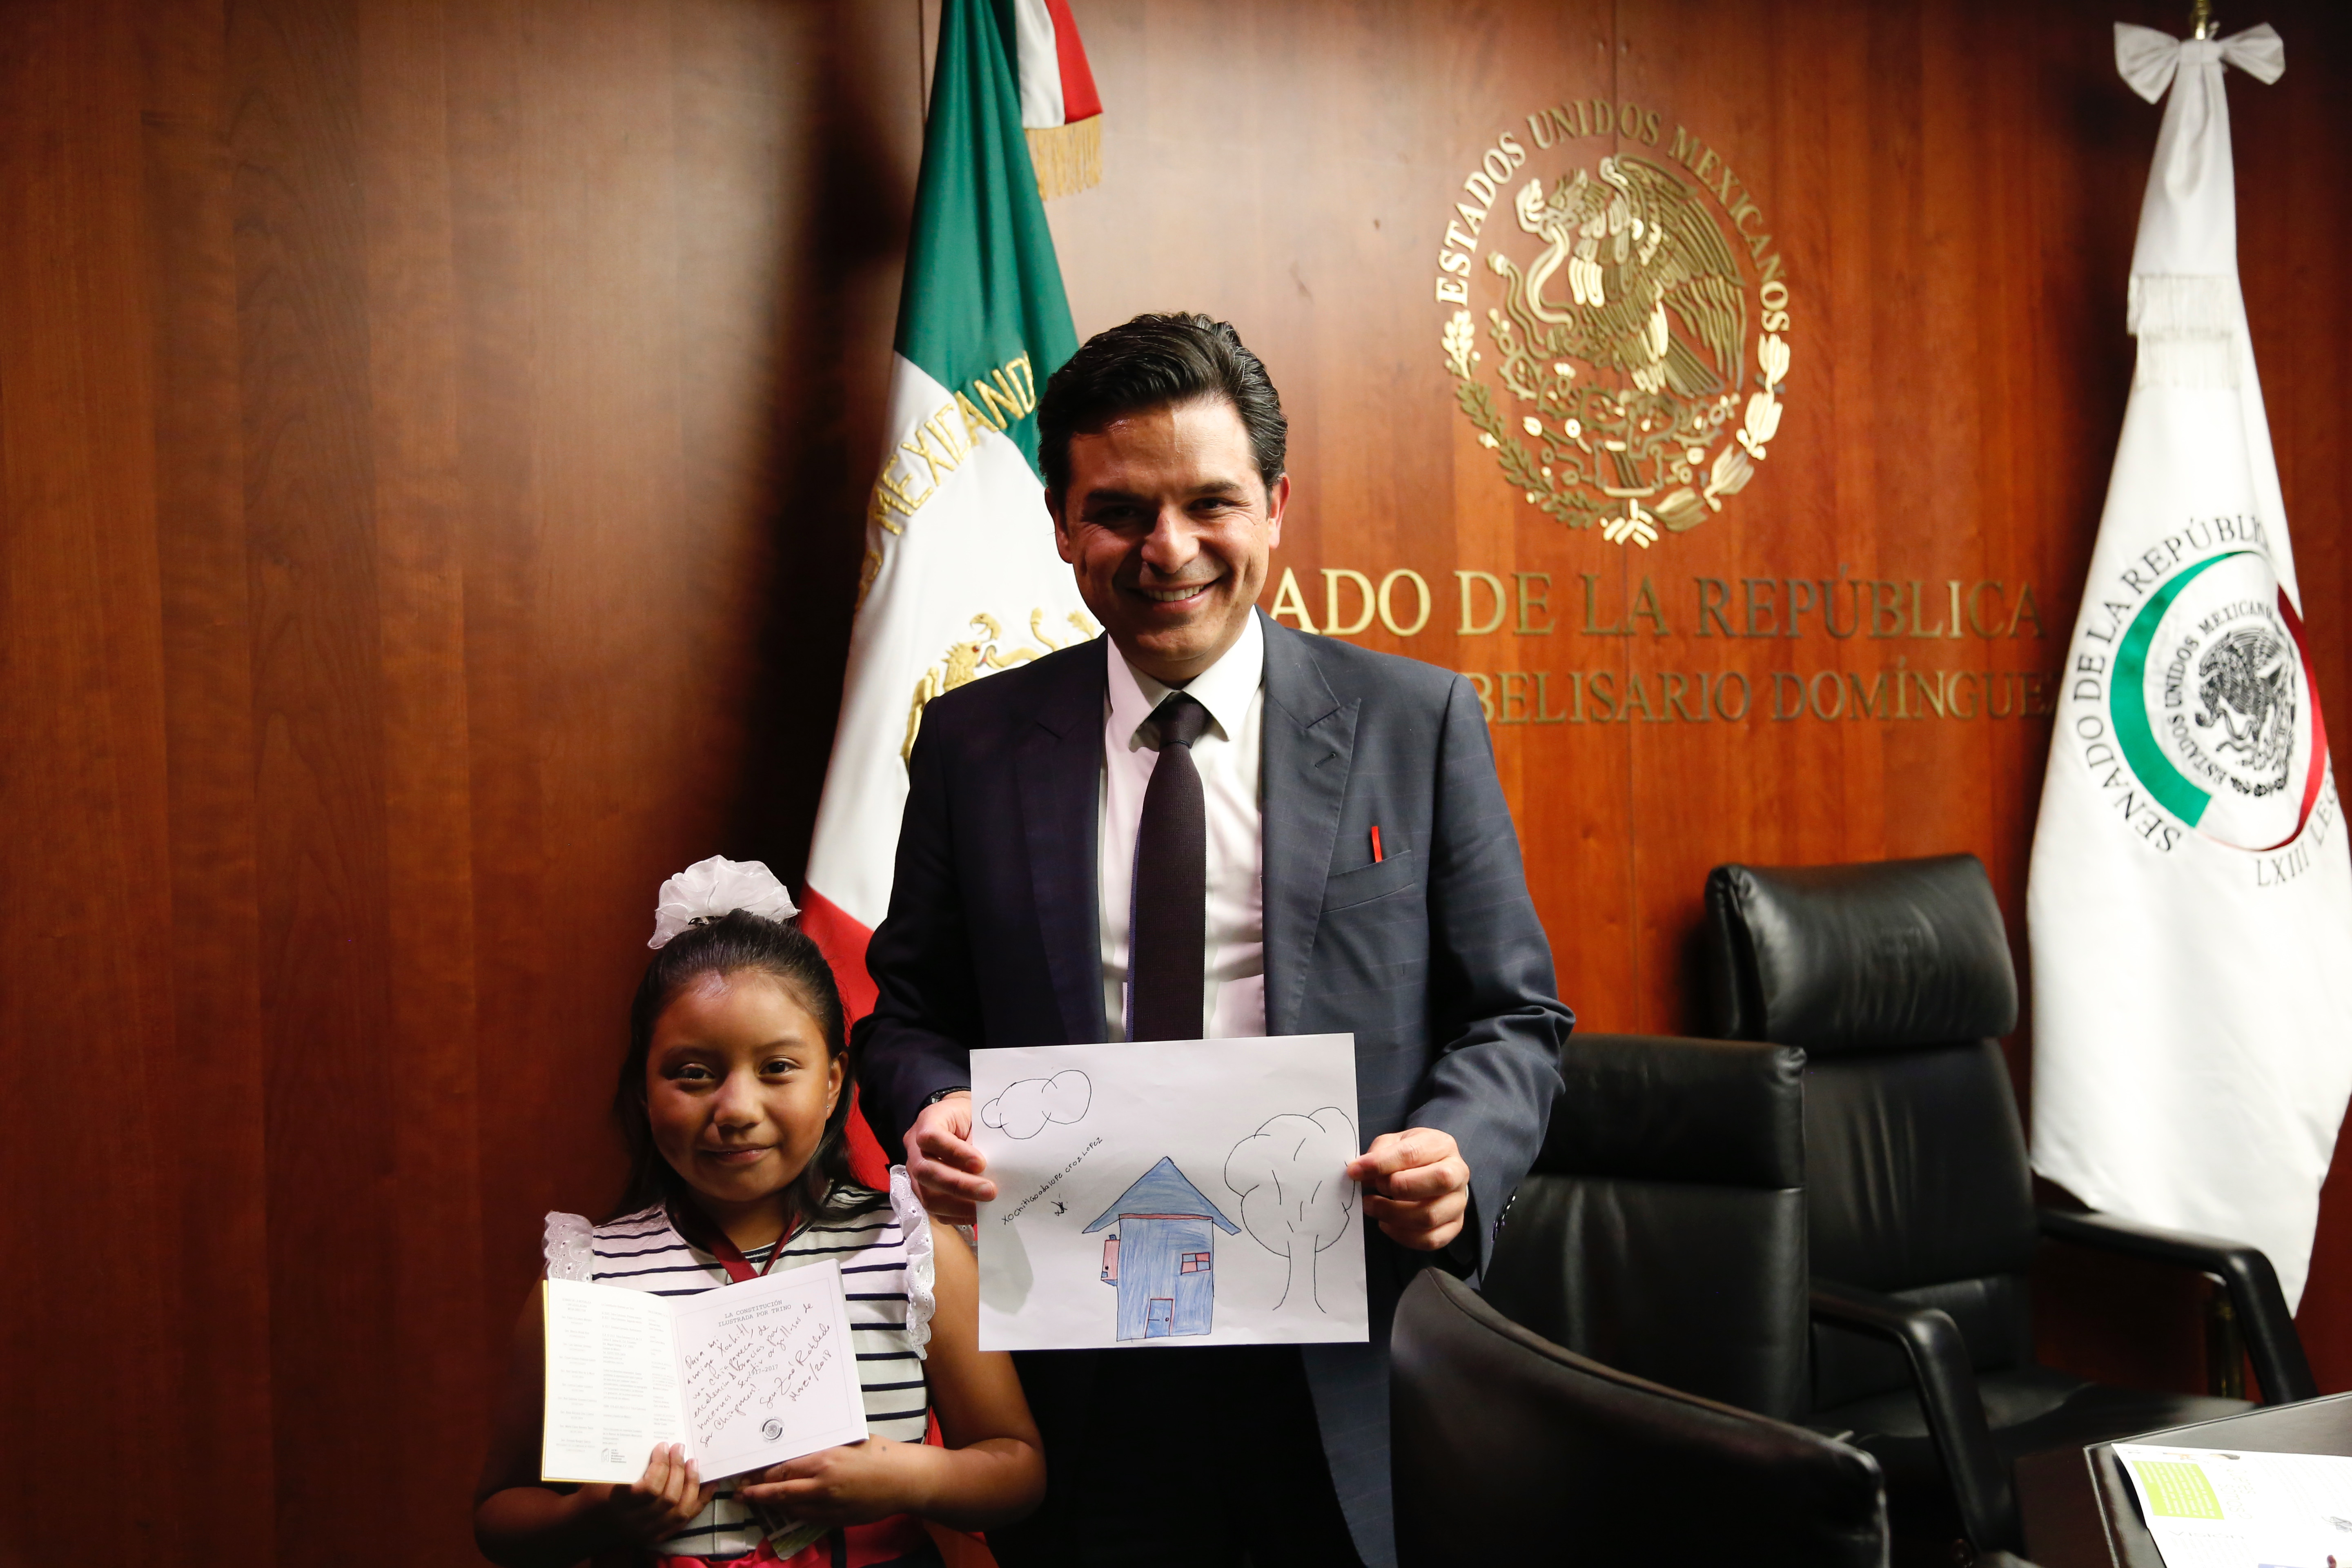 In Mexican Education Forum, 9-year-old Xóchitl Guadalupe Cruz López gives a speech asking Andres Manuel Lopez Obrador to save Science Education.